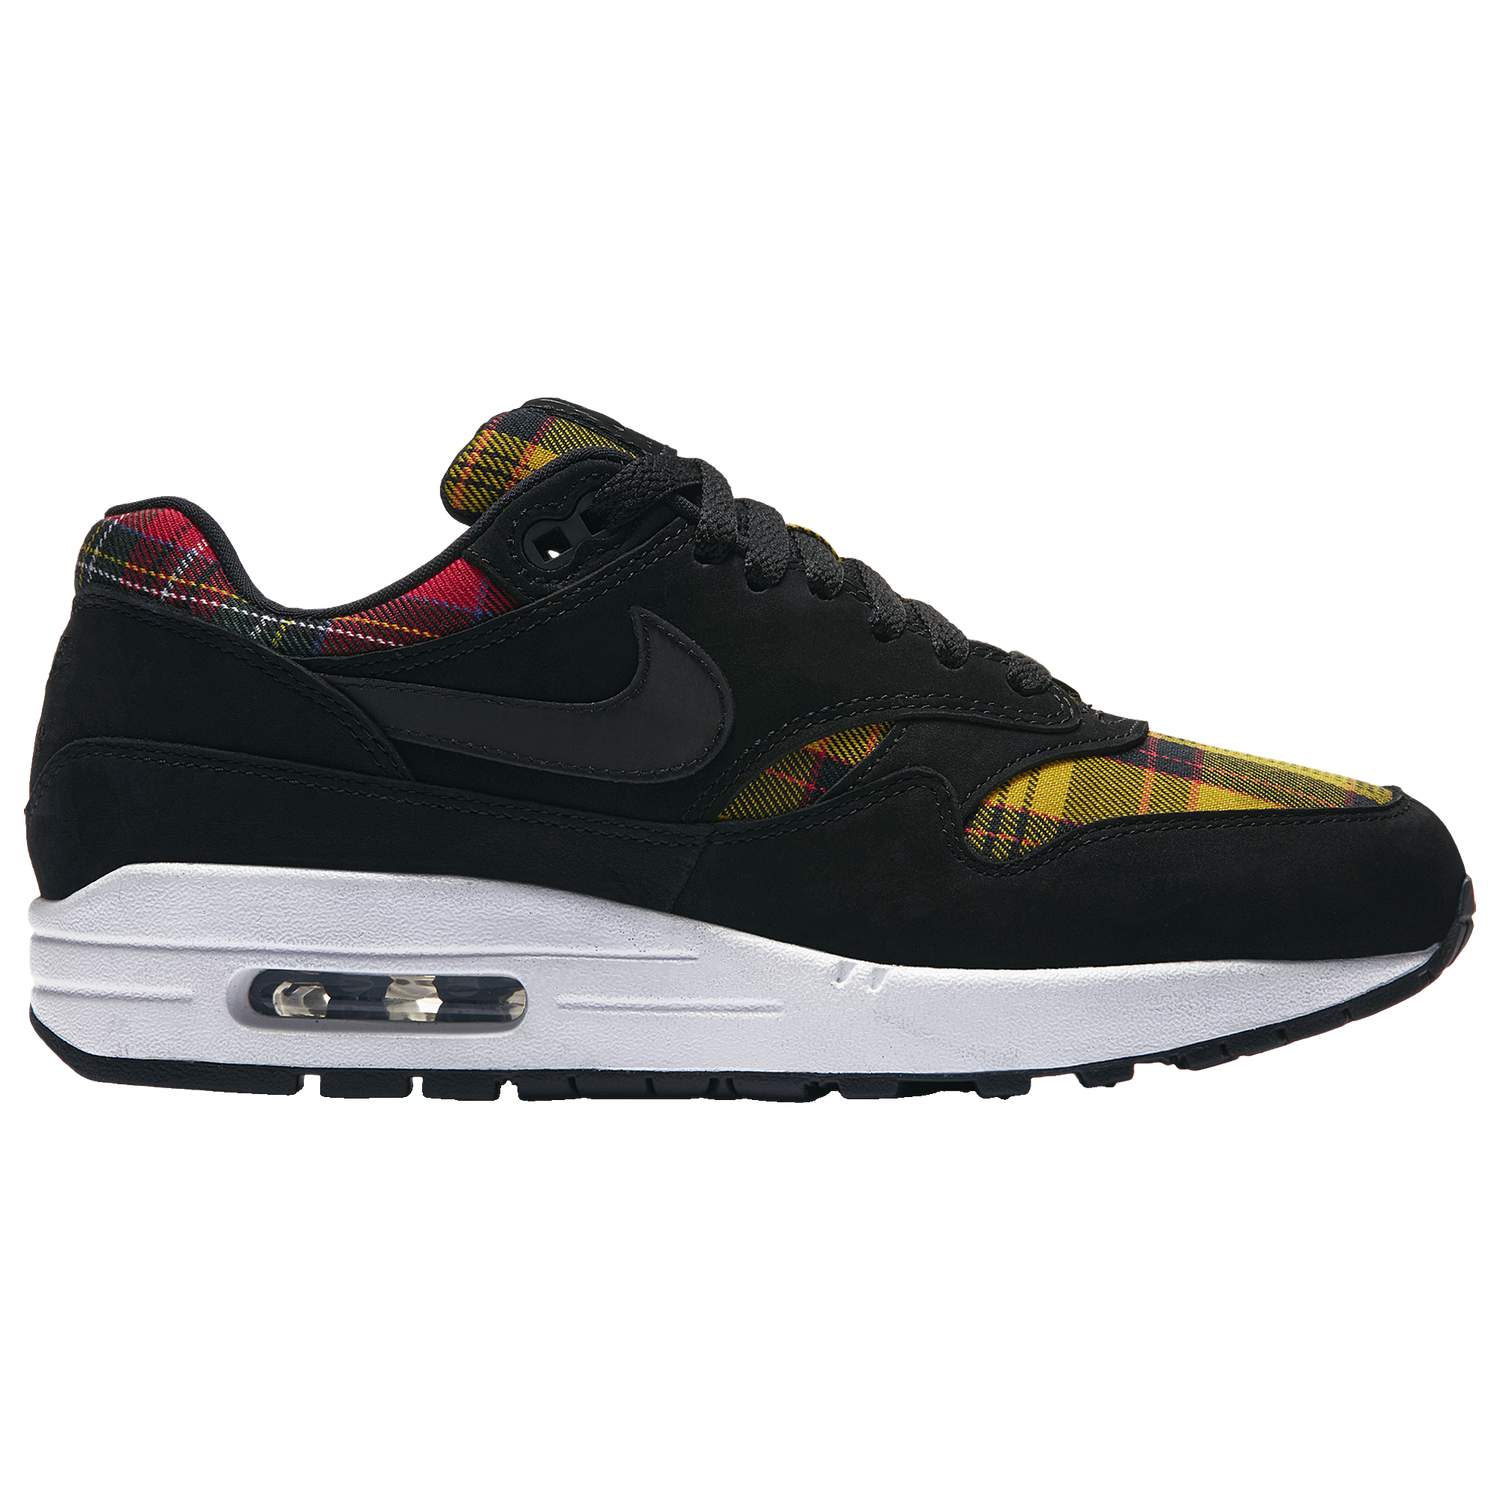 new concept b32e3 ae5e3 coupon code for red silver womens nike air max 1 shoes 74b33 31417